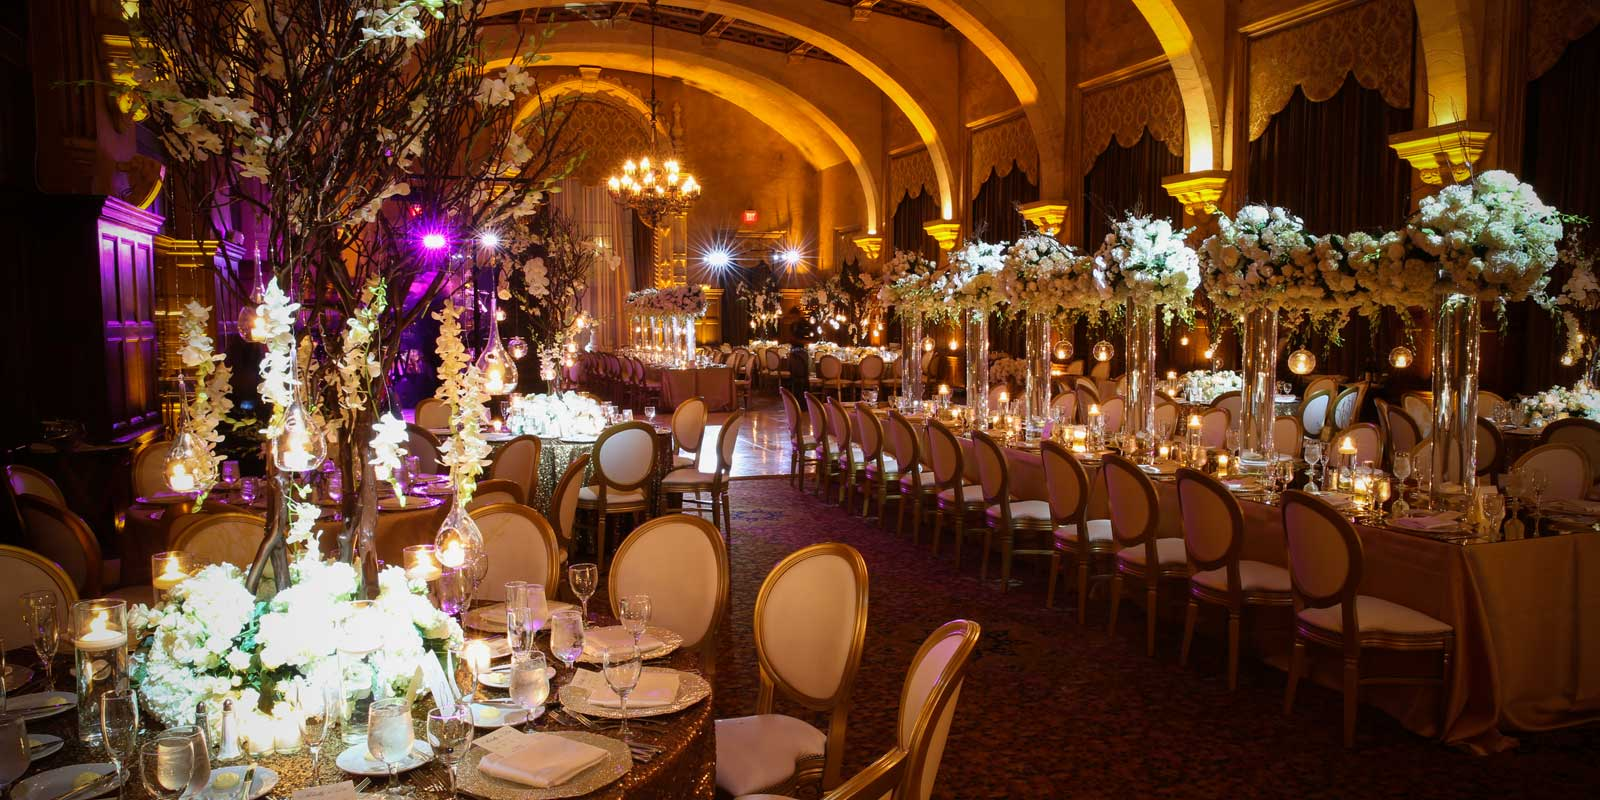 Have your dream wedding reception at the Biltmore